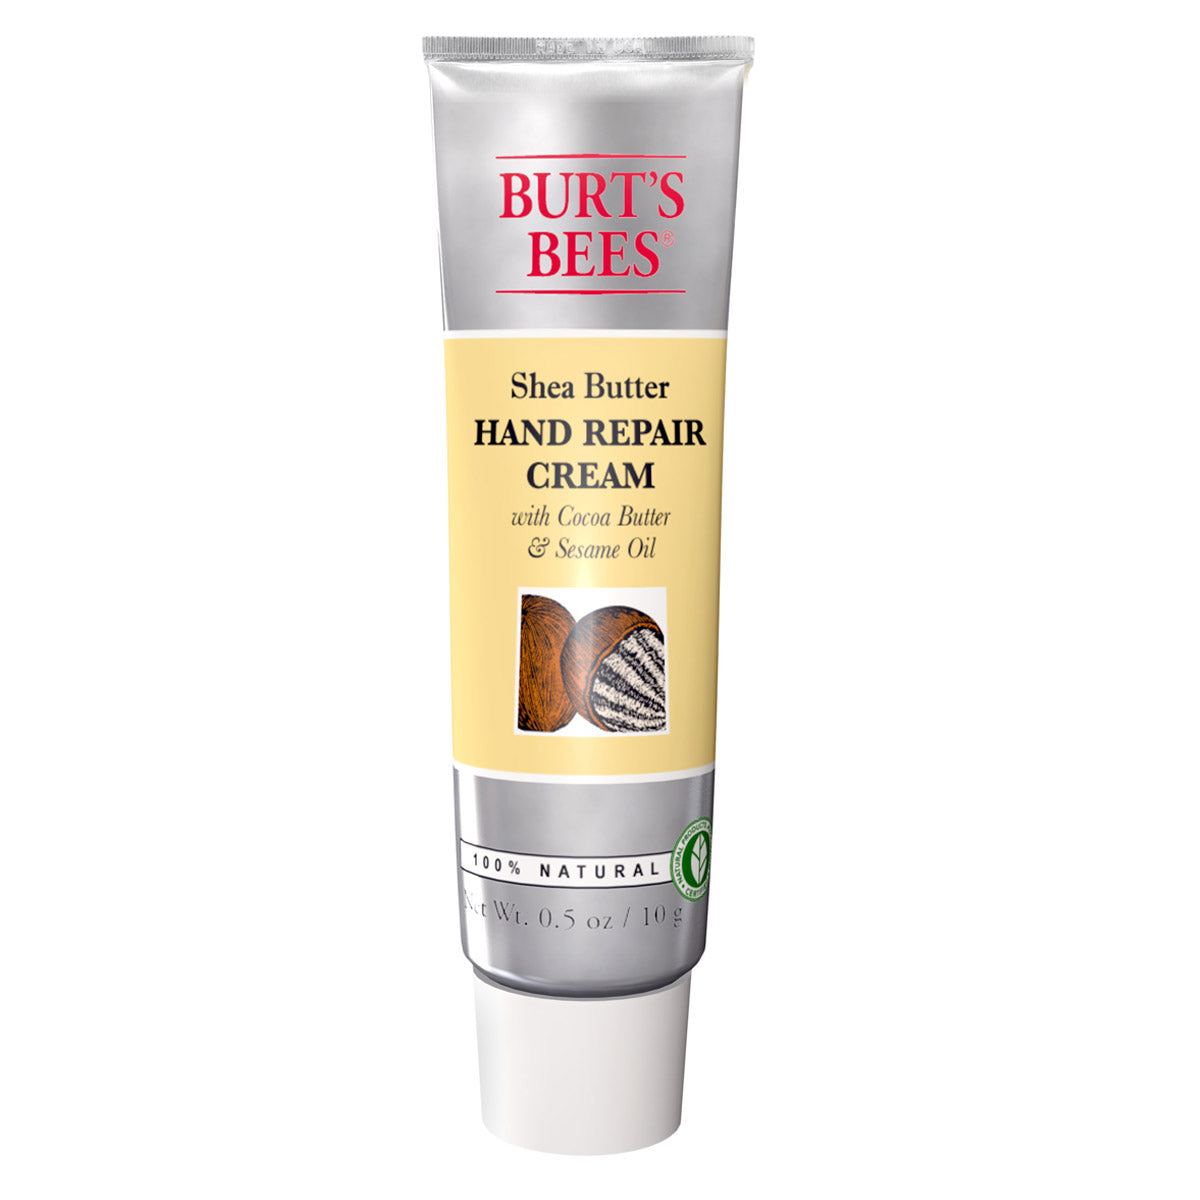 Burt's Bees Shea Butter Hand Repair Cream - Travel PAKT